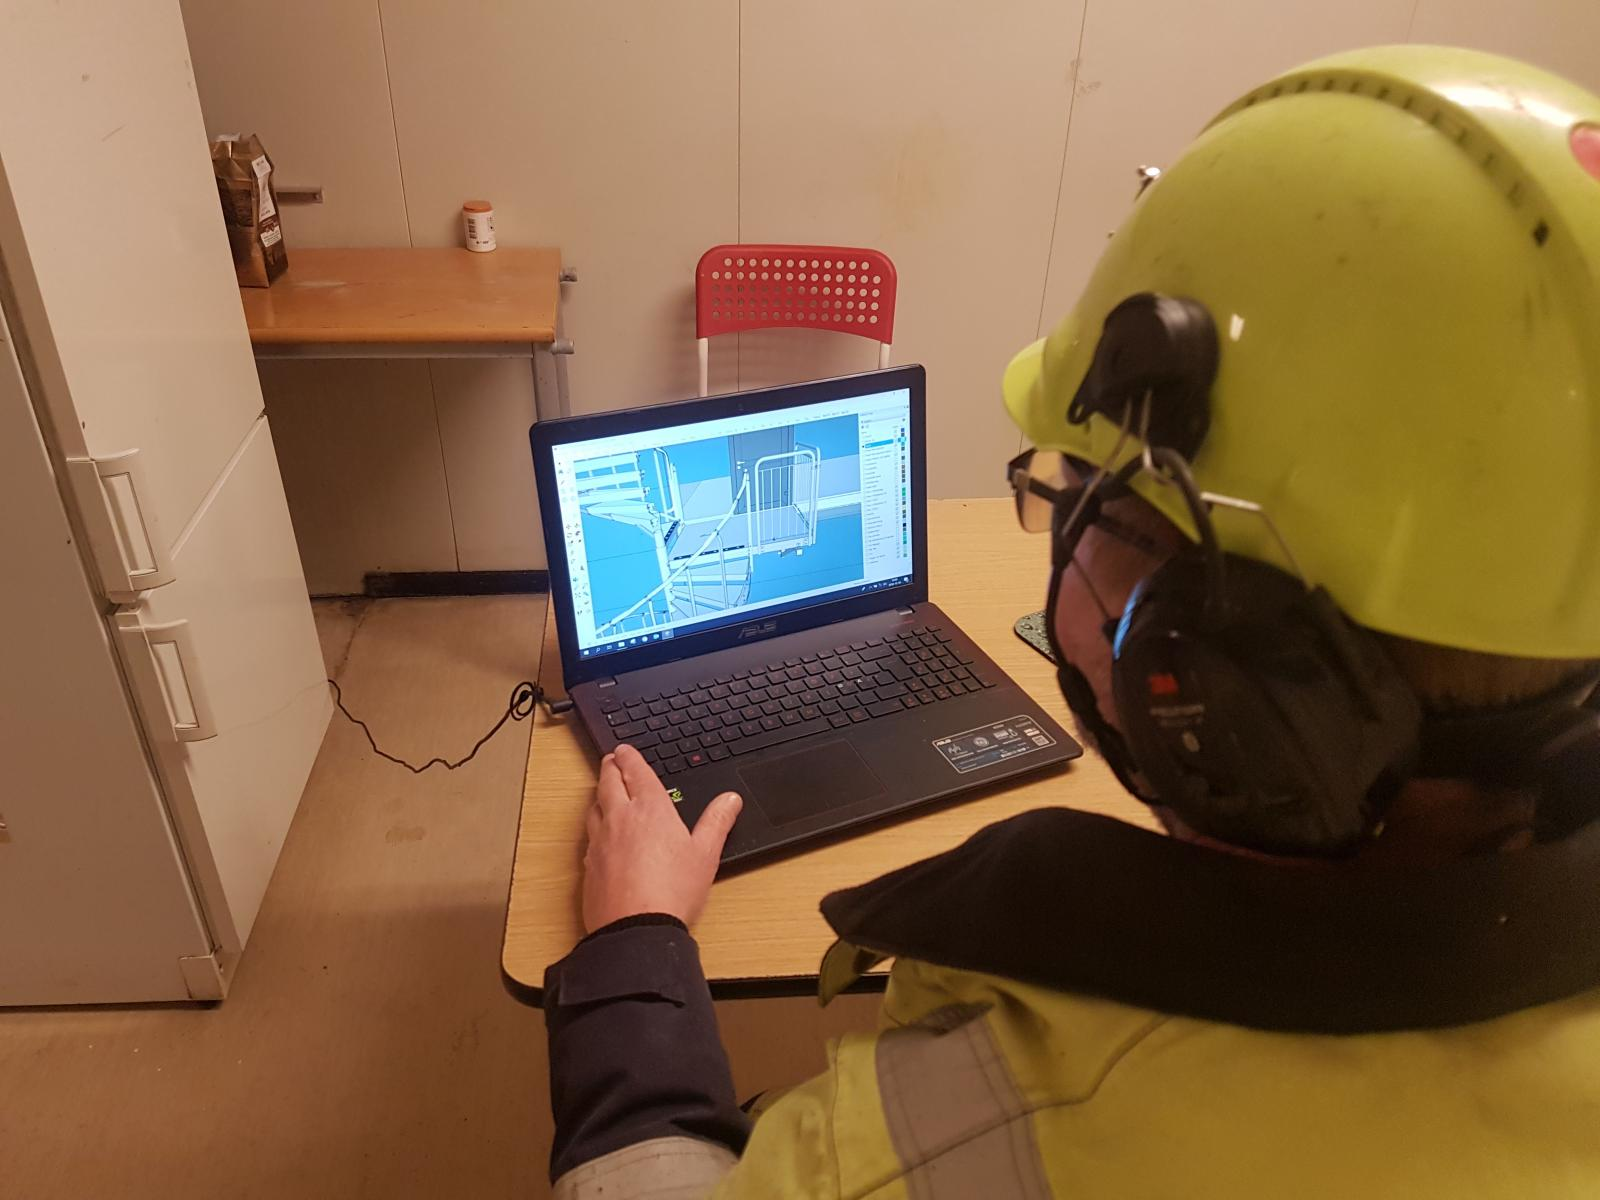 A construction team member navigates through a SketchUp model